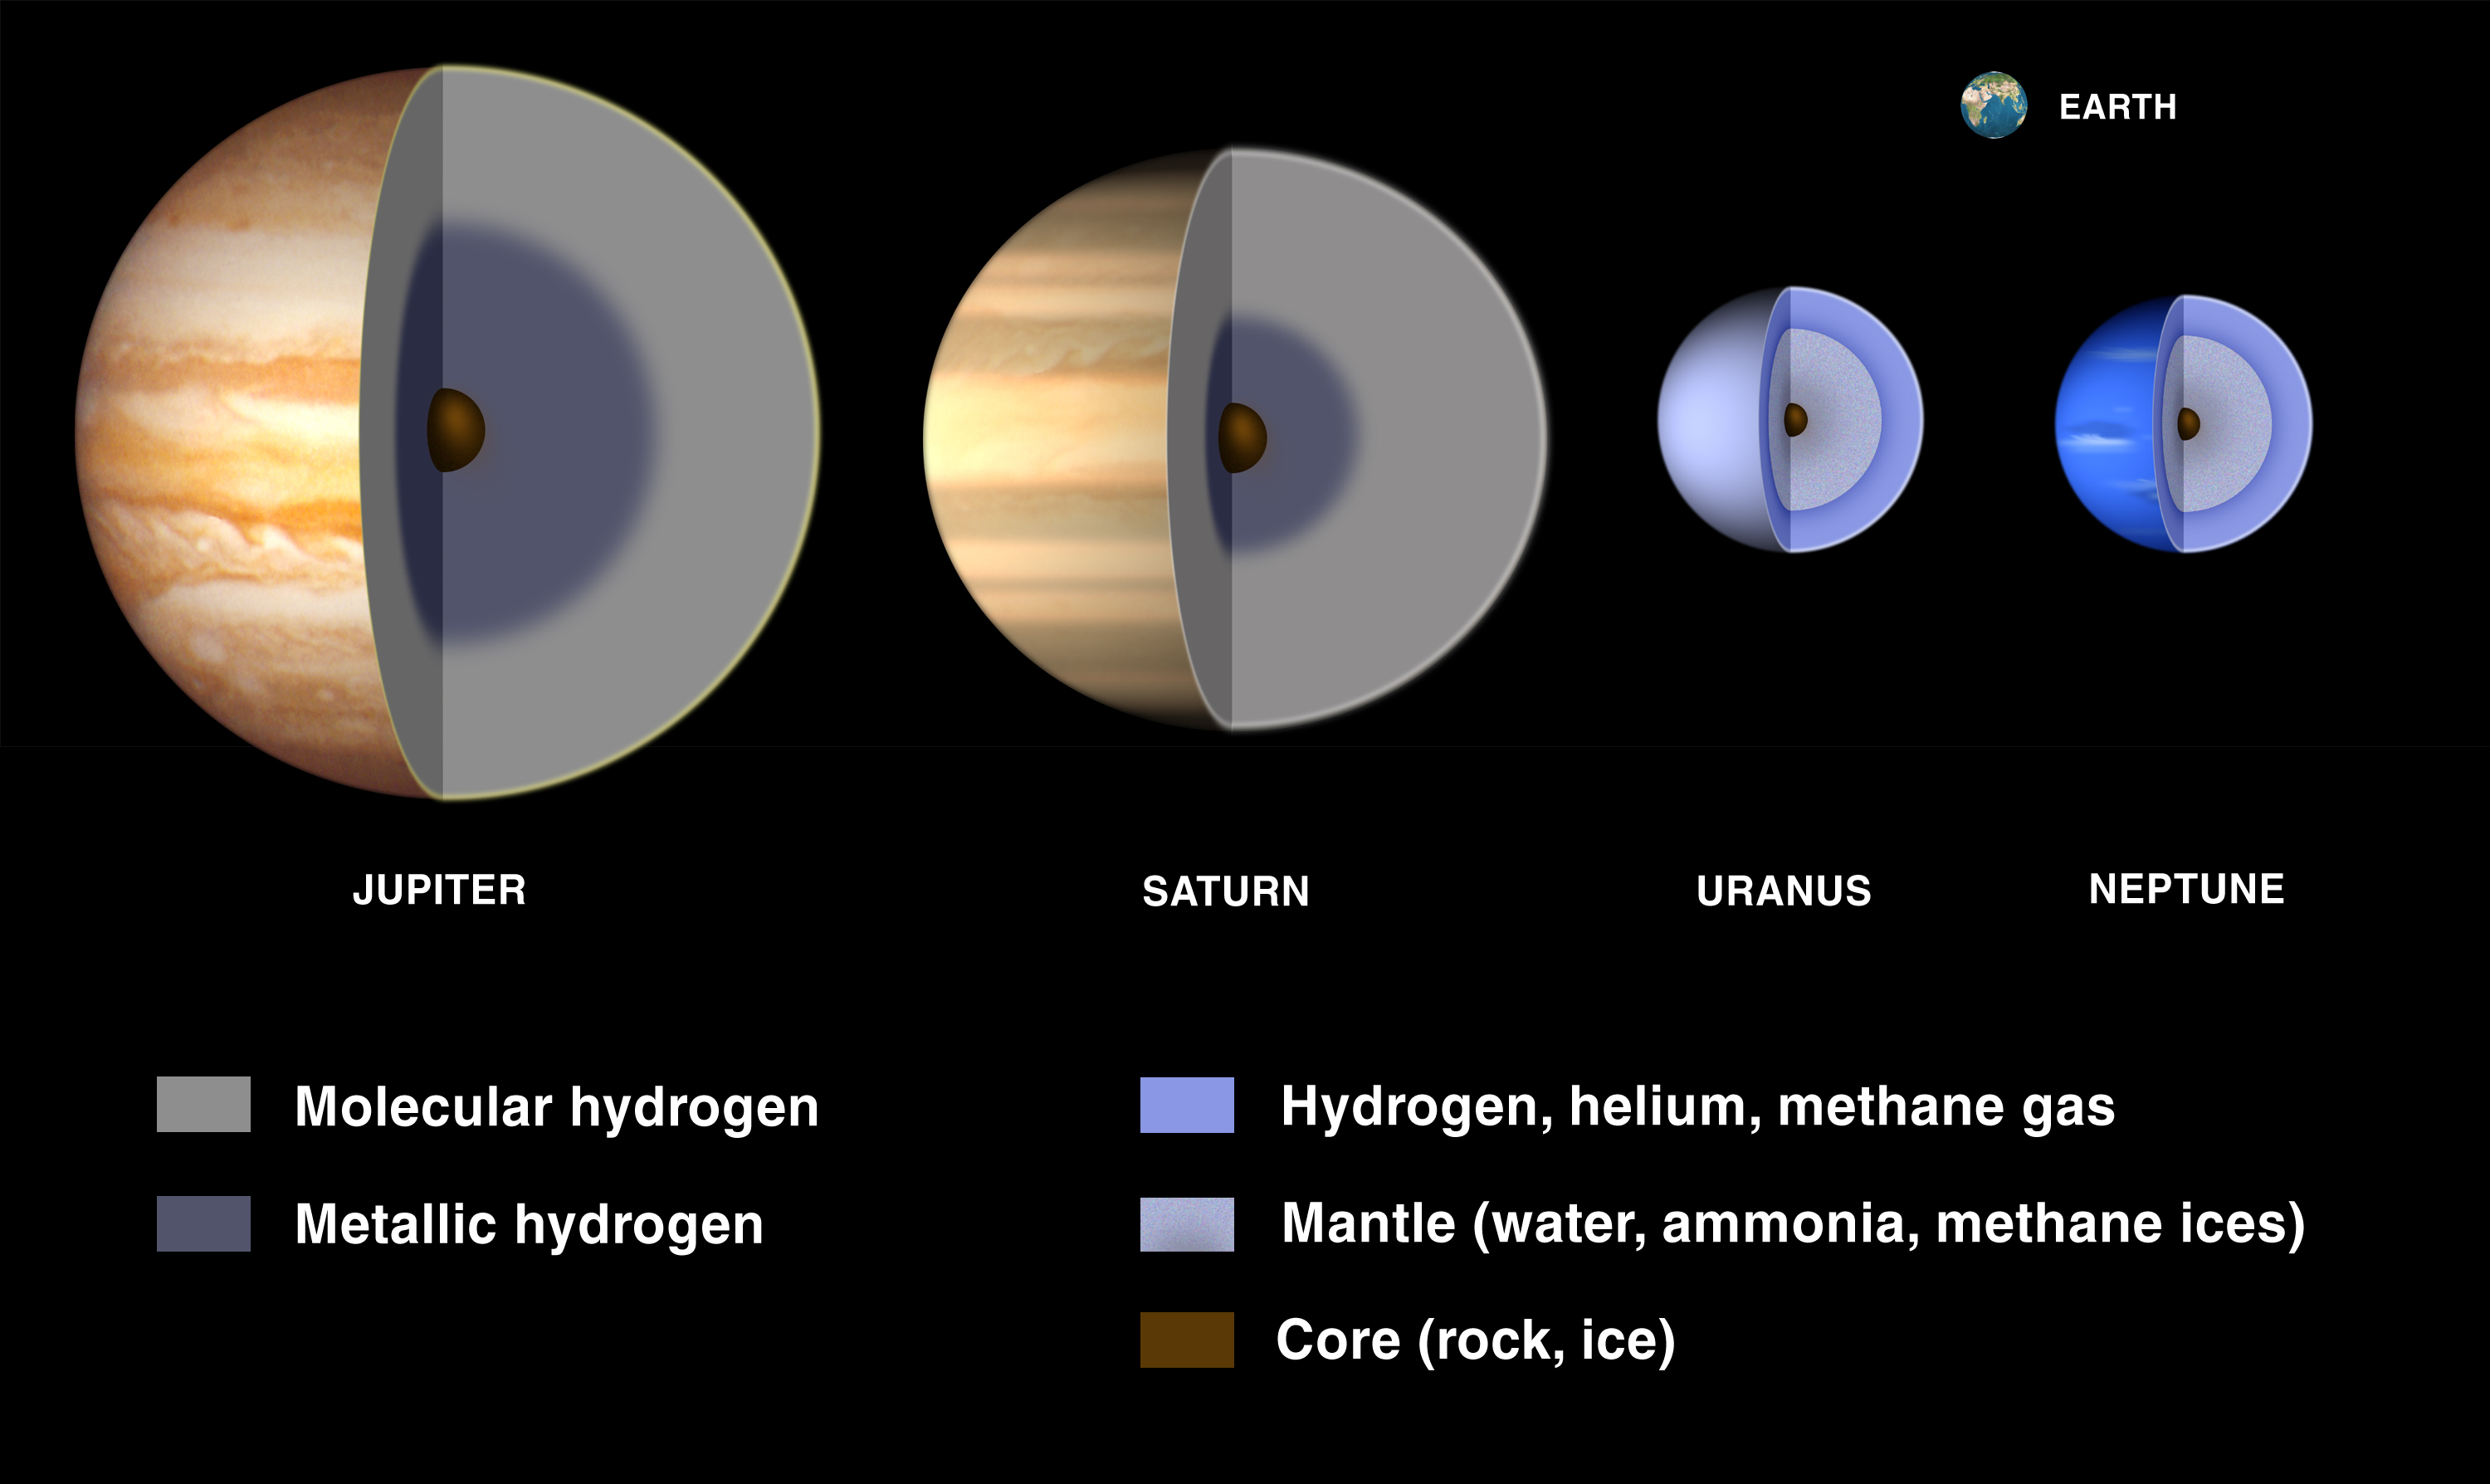 Planets that have gas